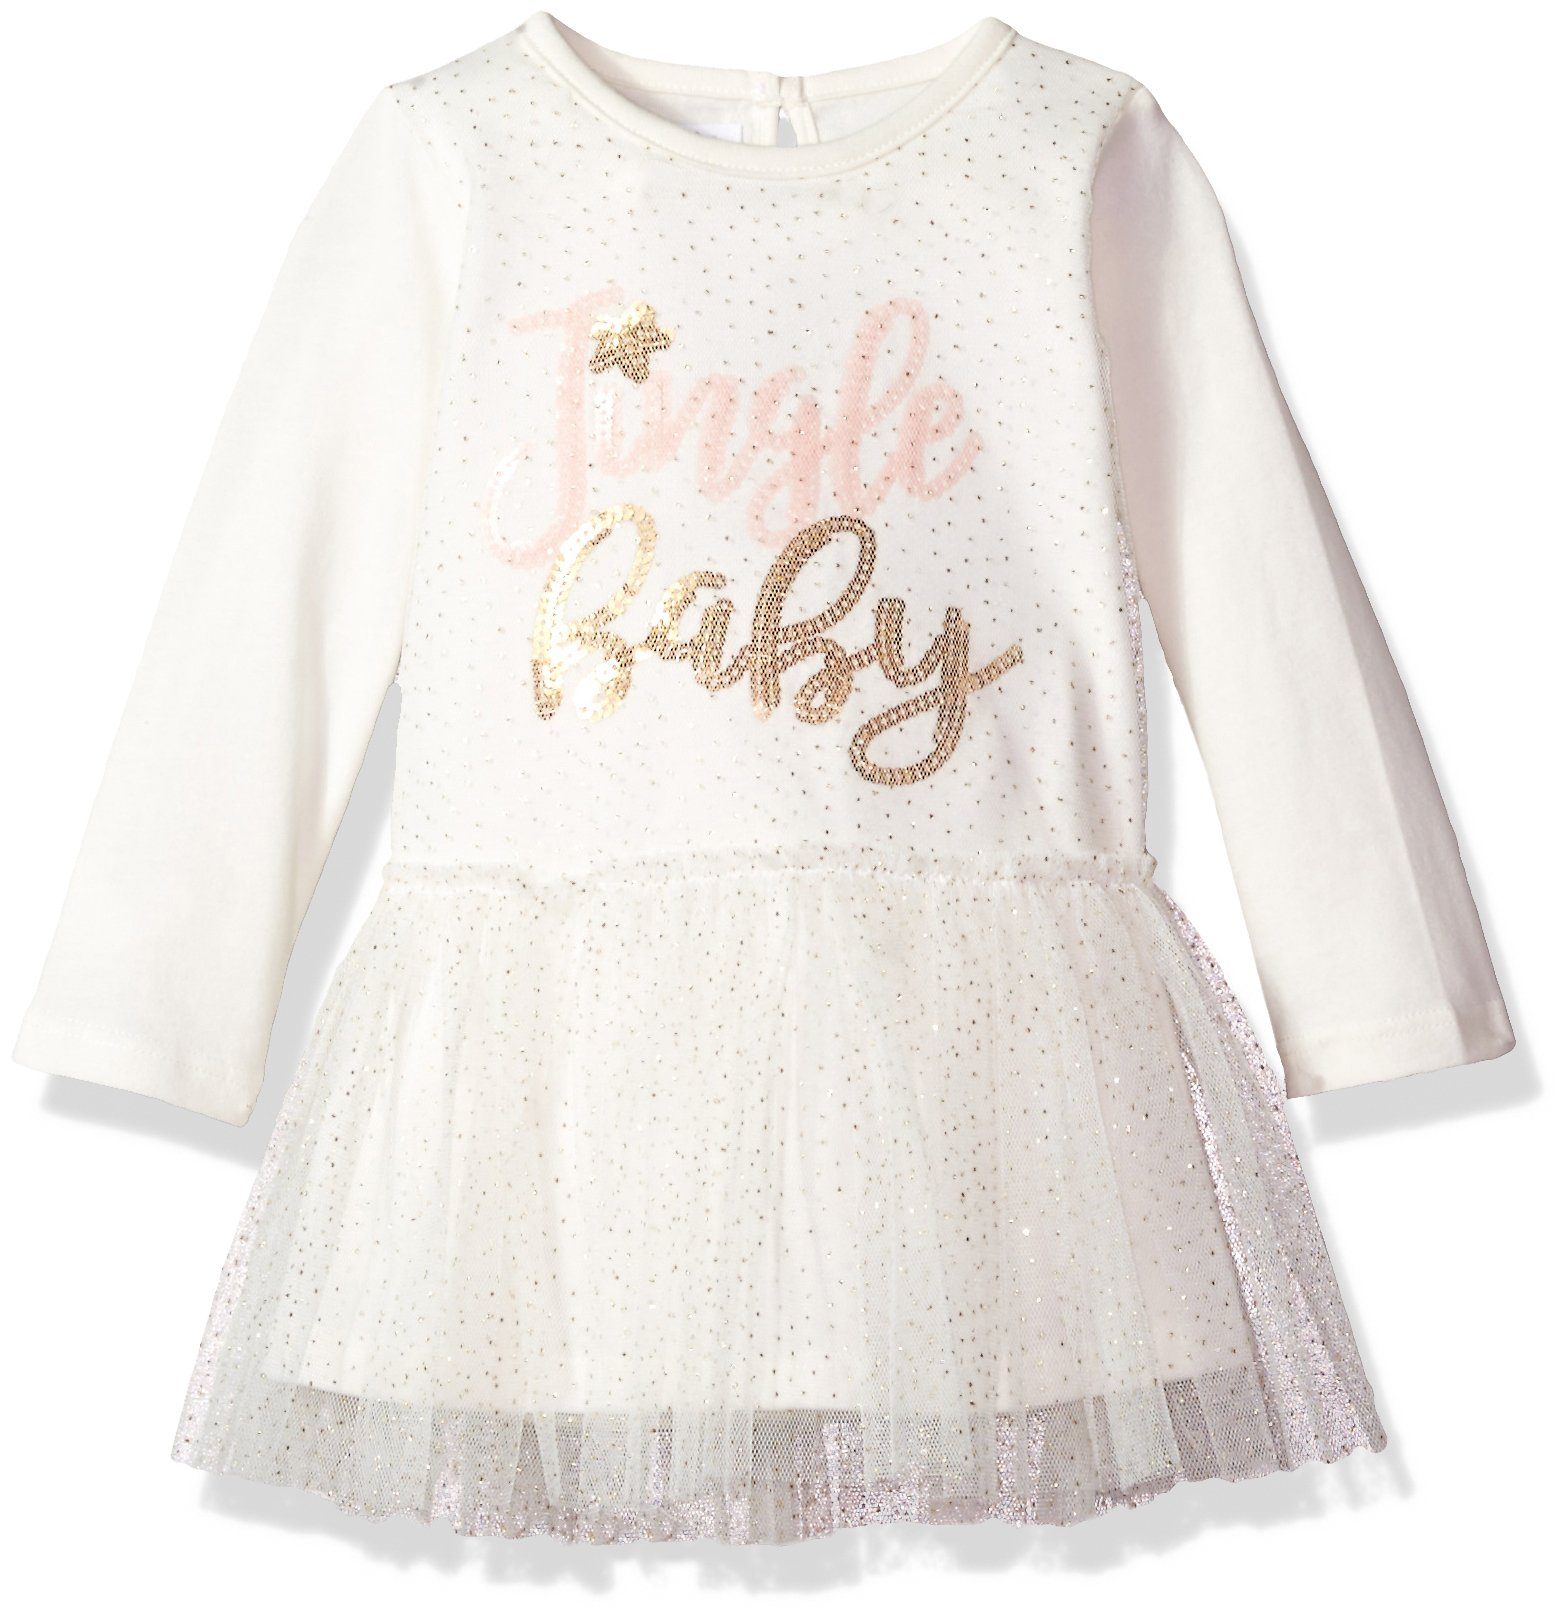 Mud Pie Girls' Christmas Jingle Baby Long Sleeve Mesh Overlay Tutu Dress